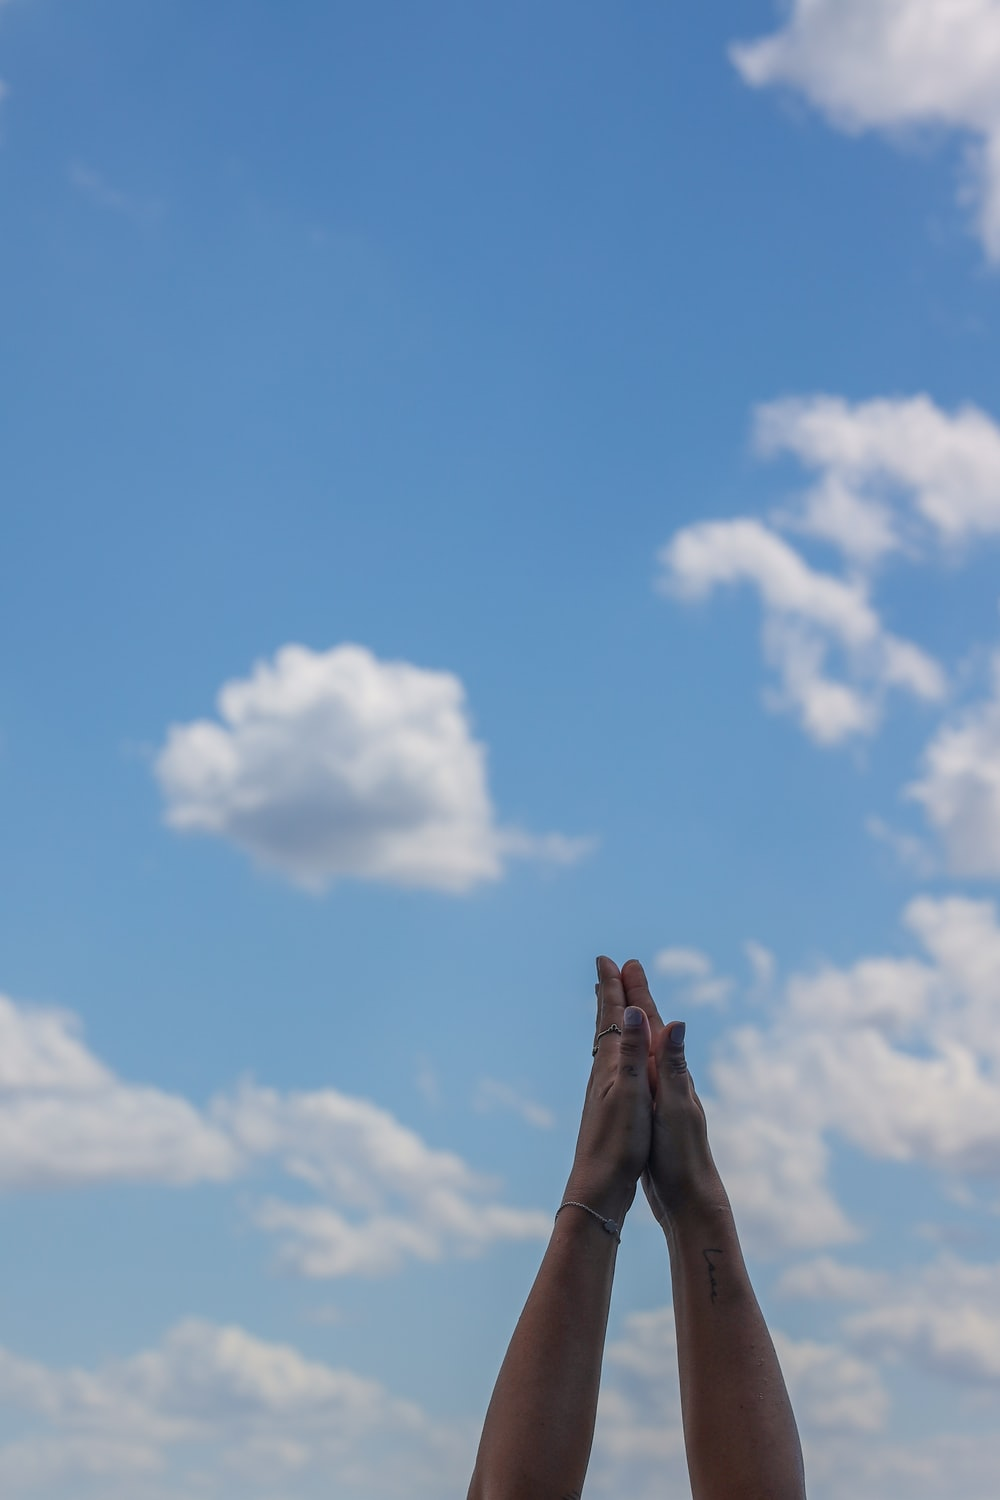 person raising his right hand under blue sky and white clouds during daytime